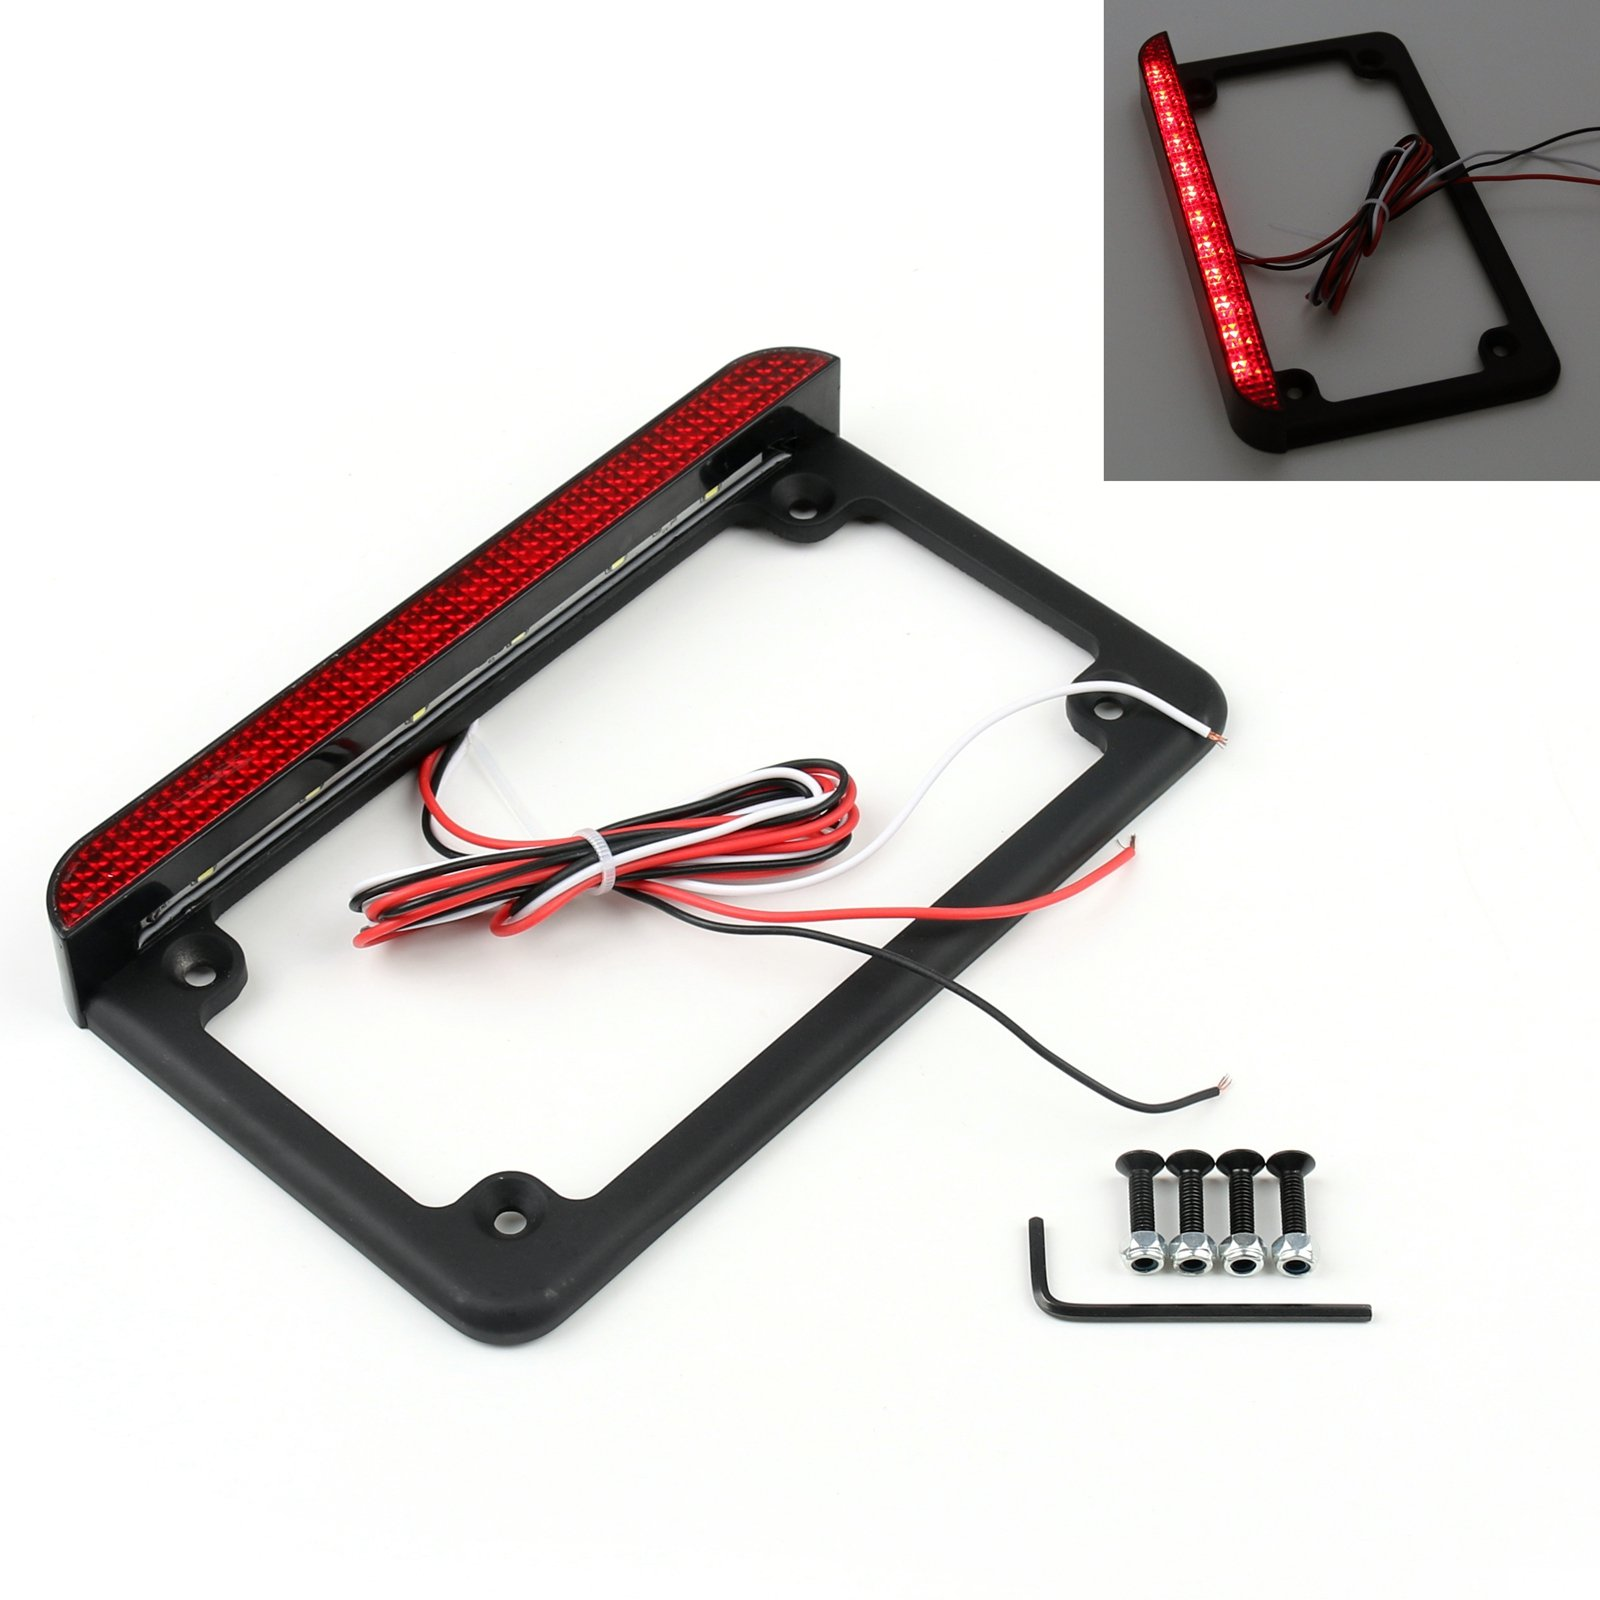 Areyourshop Universal Motorcycle 6'' LED License Plate Frame With LED Tail Brake Light Black